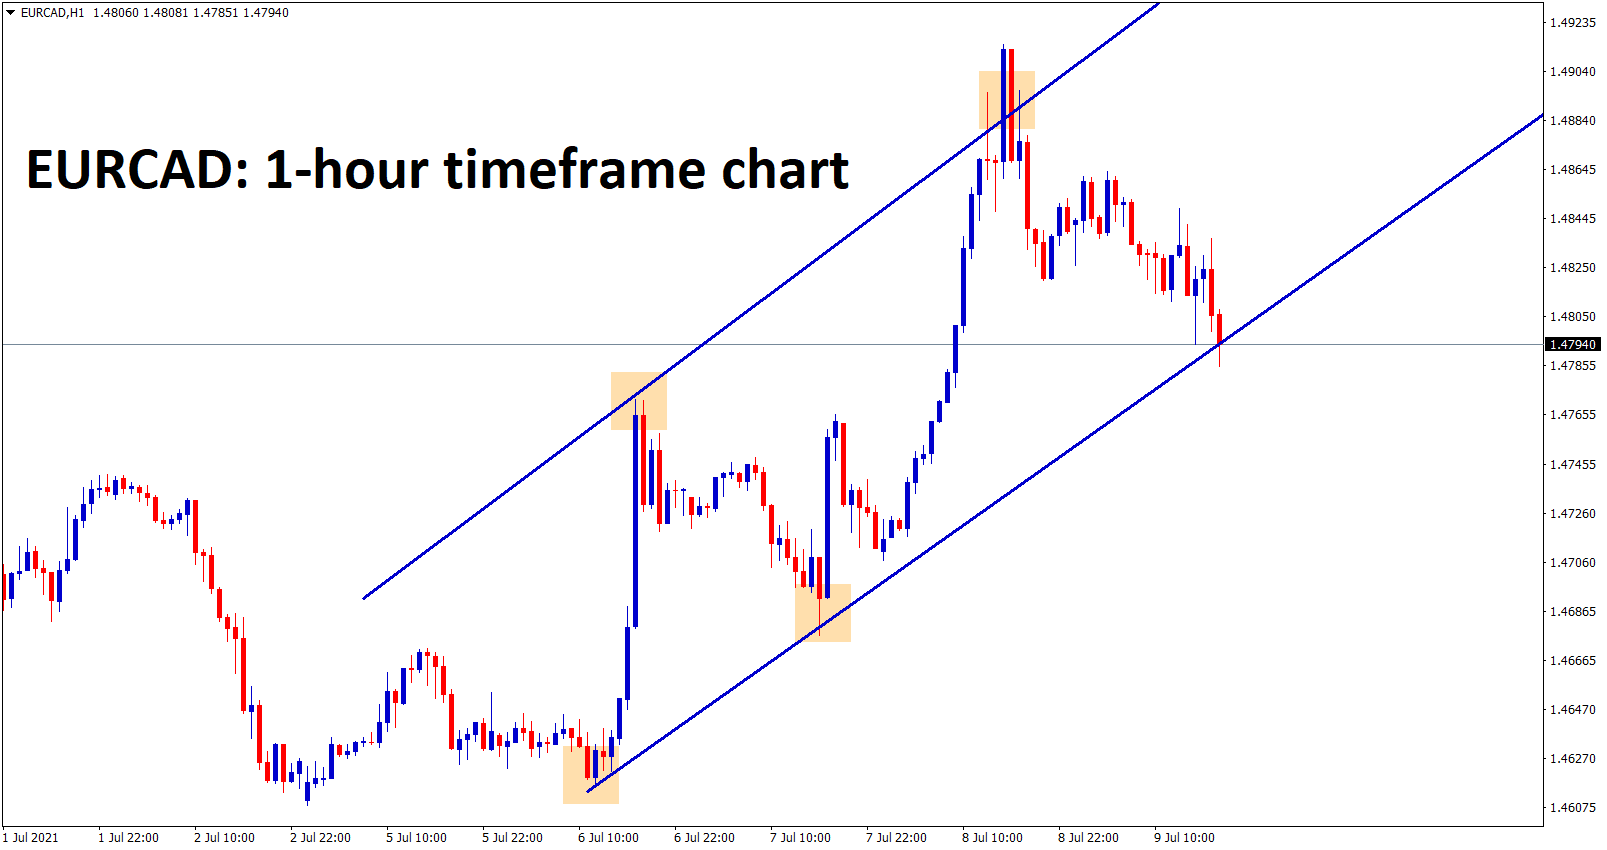 EURCAD at the higher low zone of an uptrend line